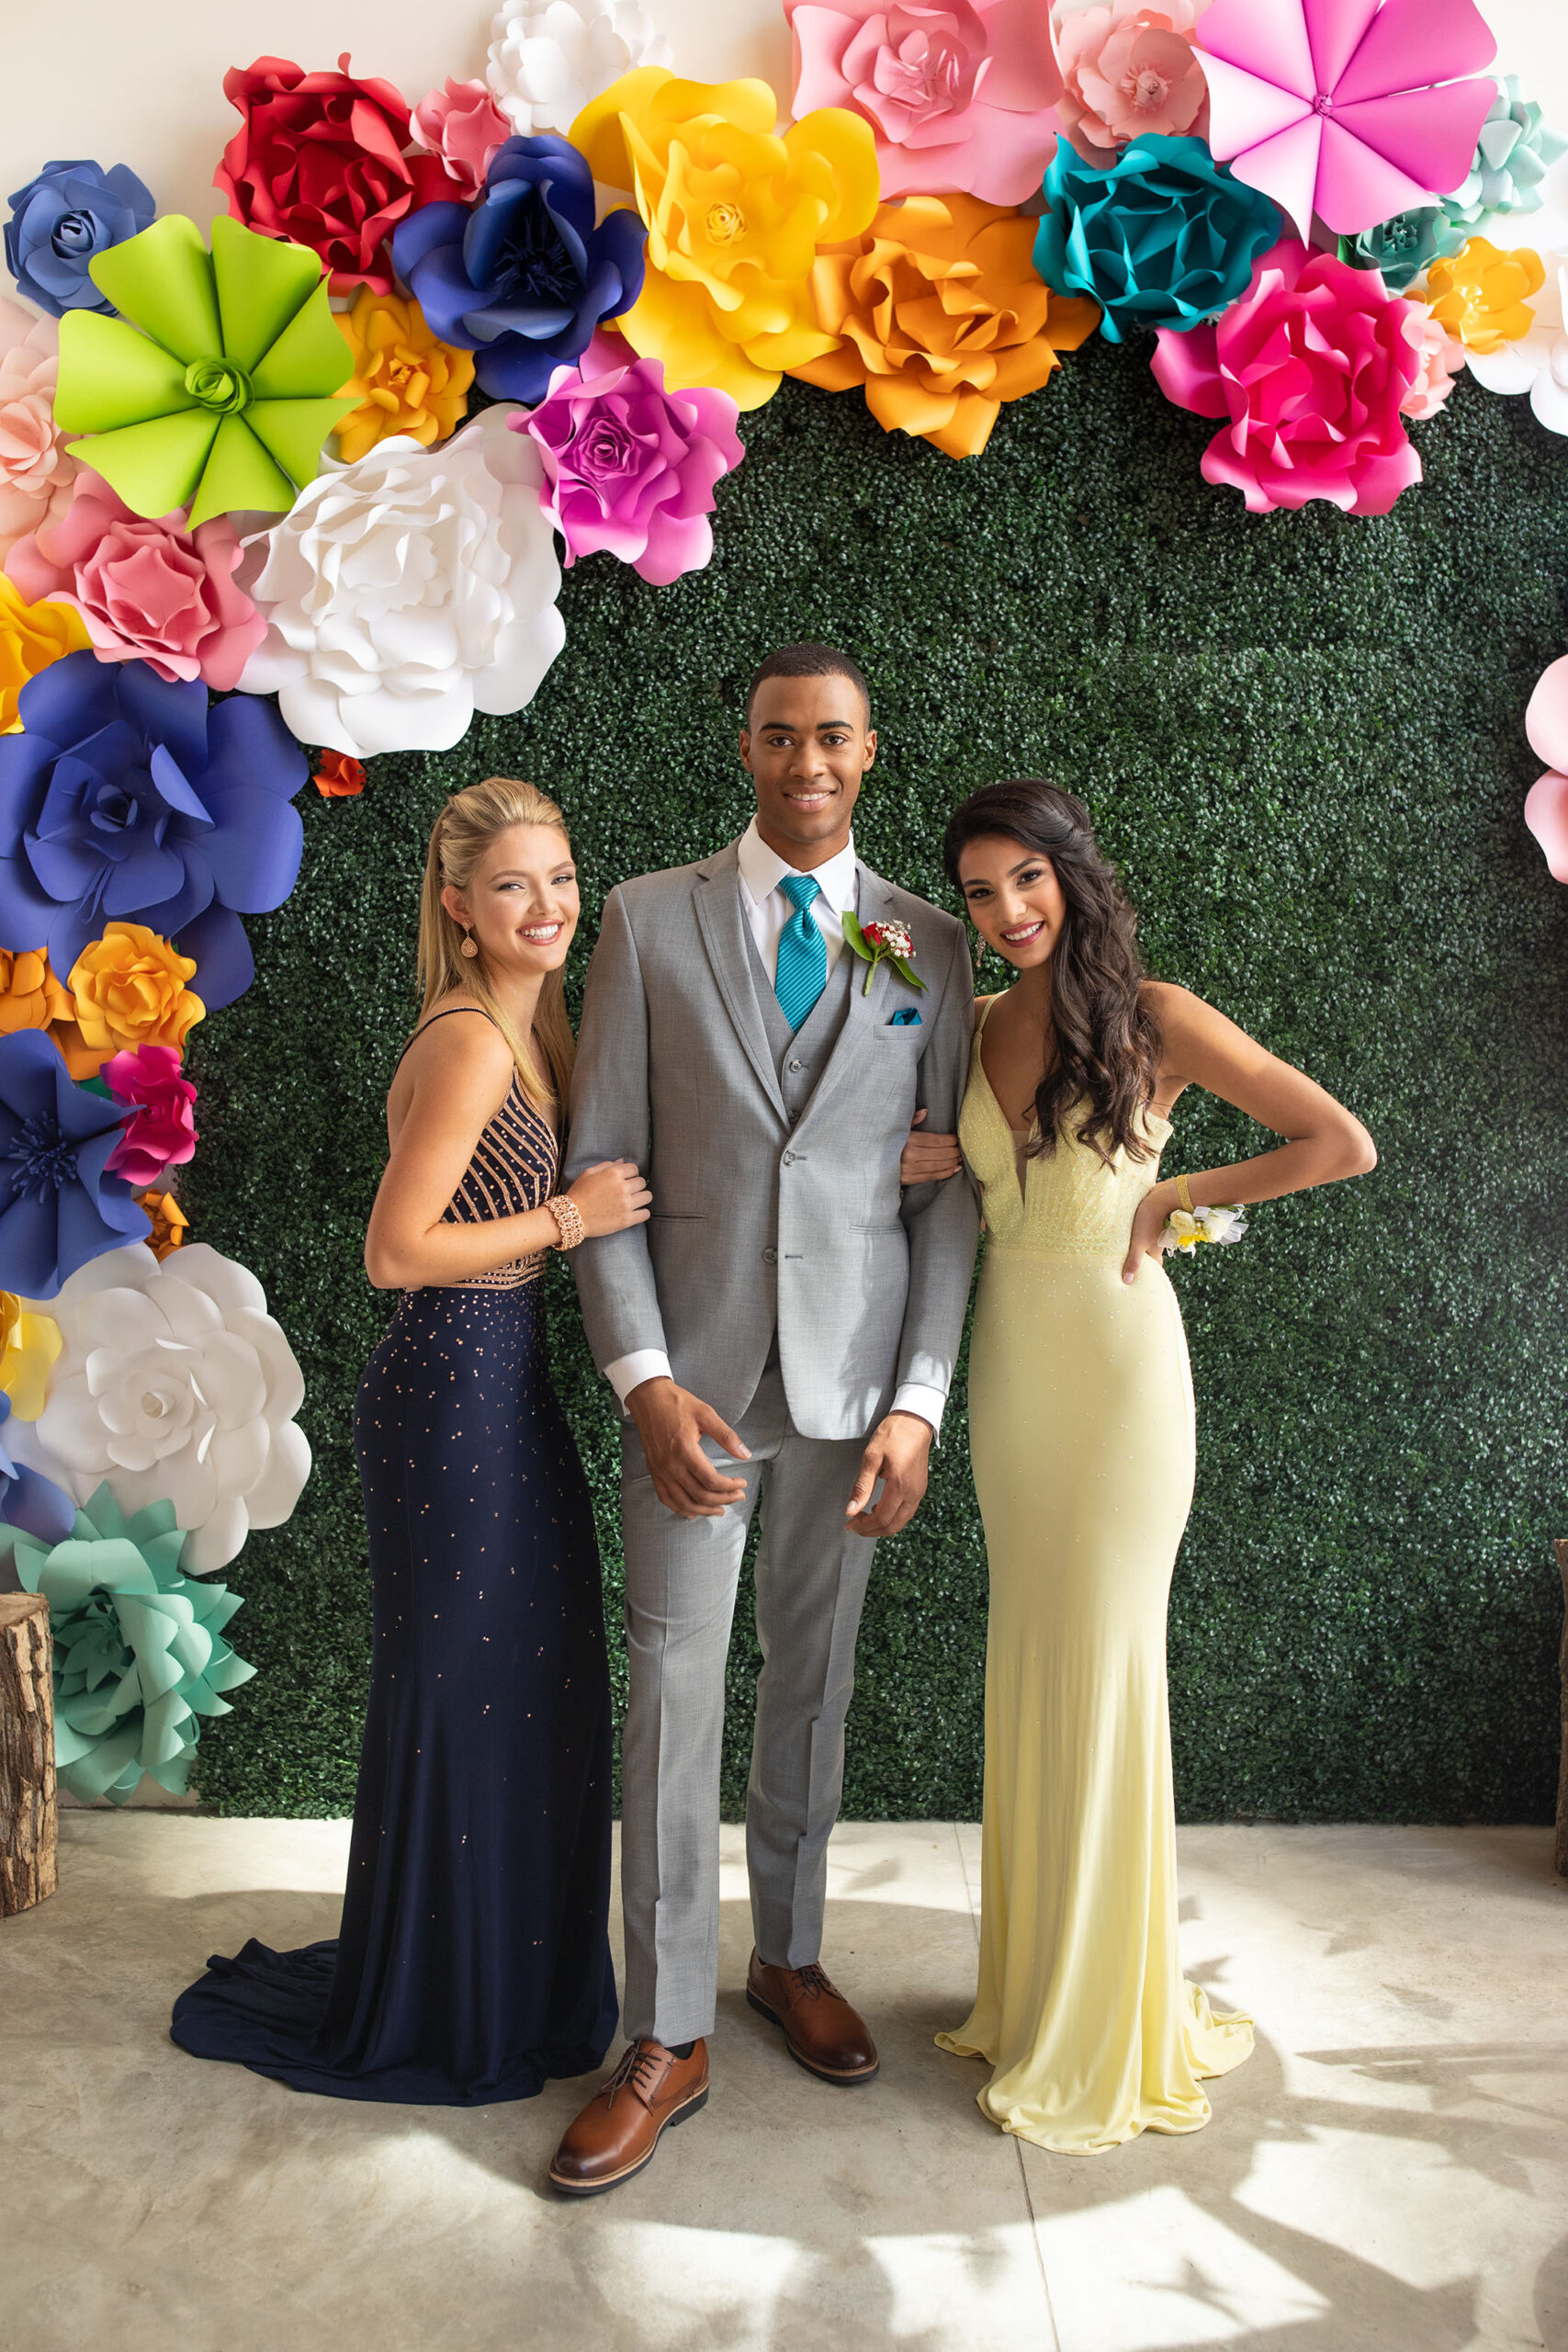 prom after-party picture with guy in grey suit, blonde female in navy dress and brunette in yellow dress standing in front of moss covered wall with brightly colored paper flowers